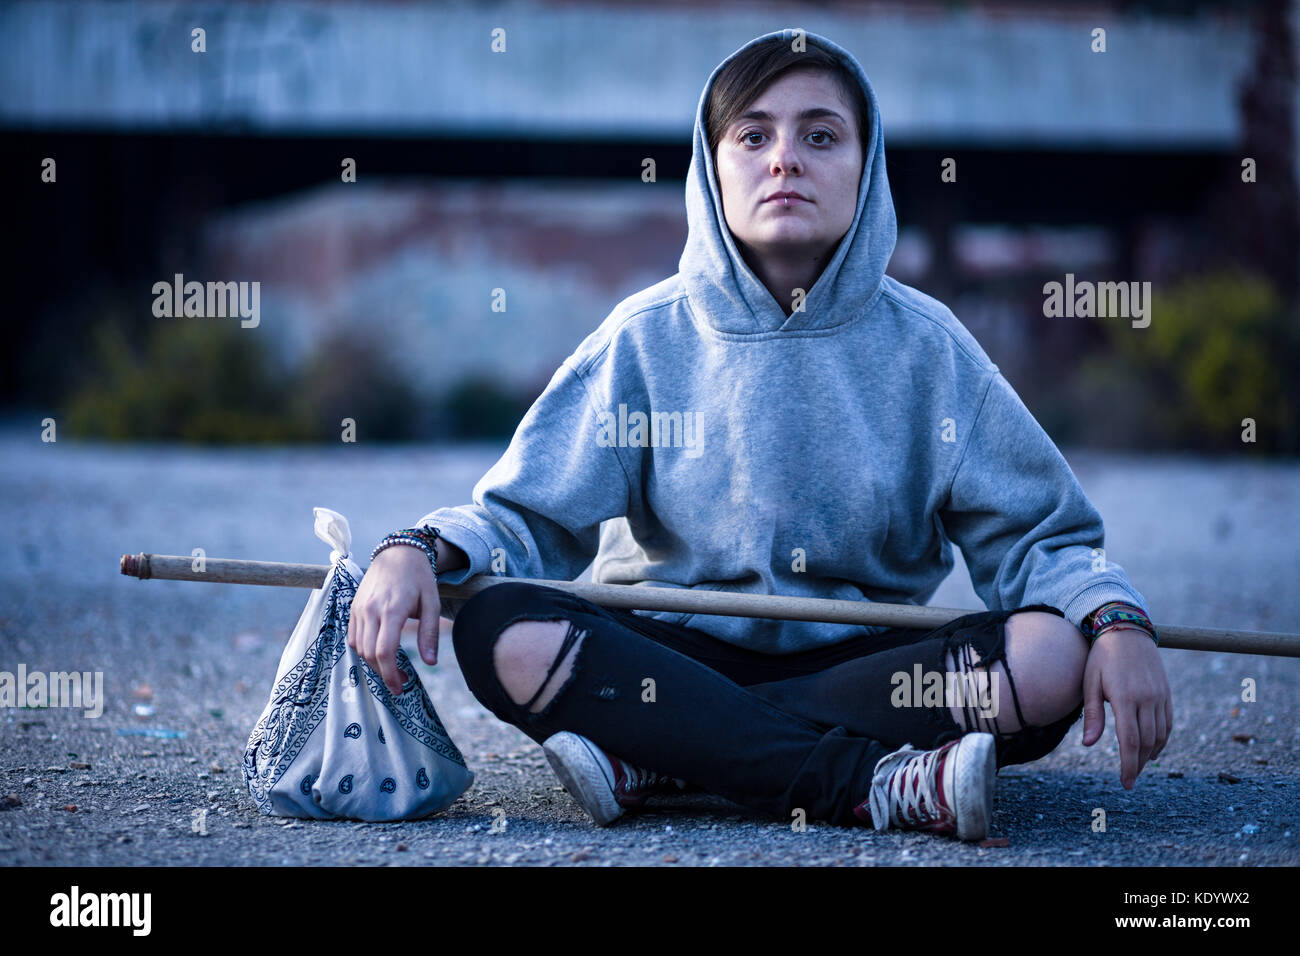 Vagrant Woman with Hobo Stick Sitting on the Street - Stock Image